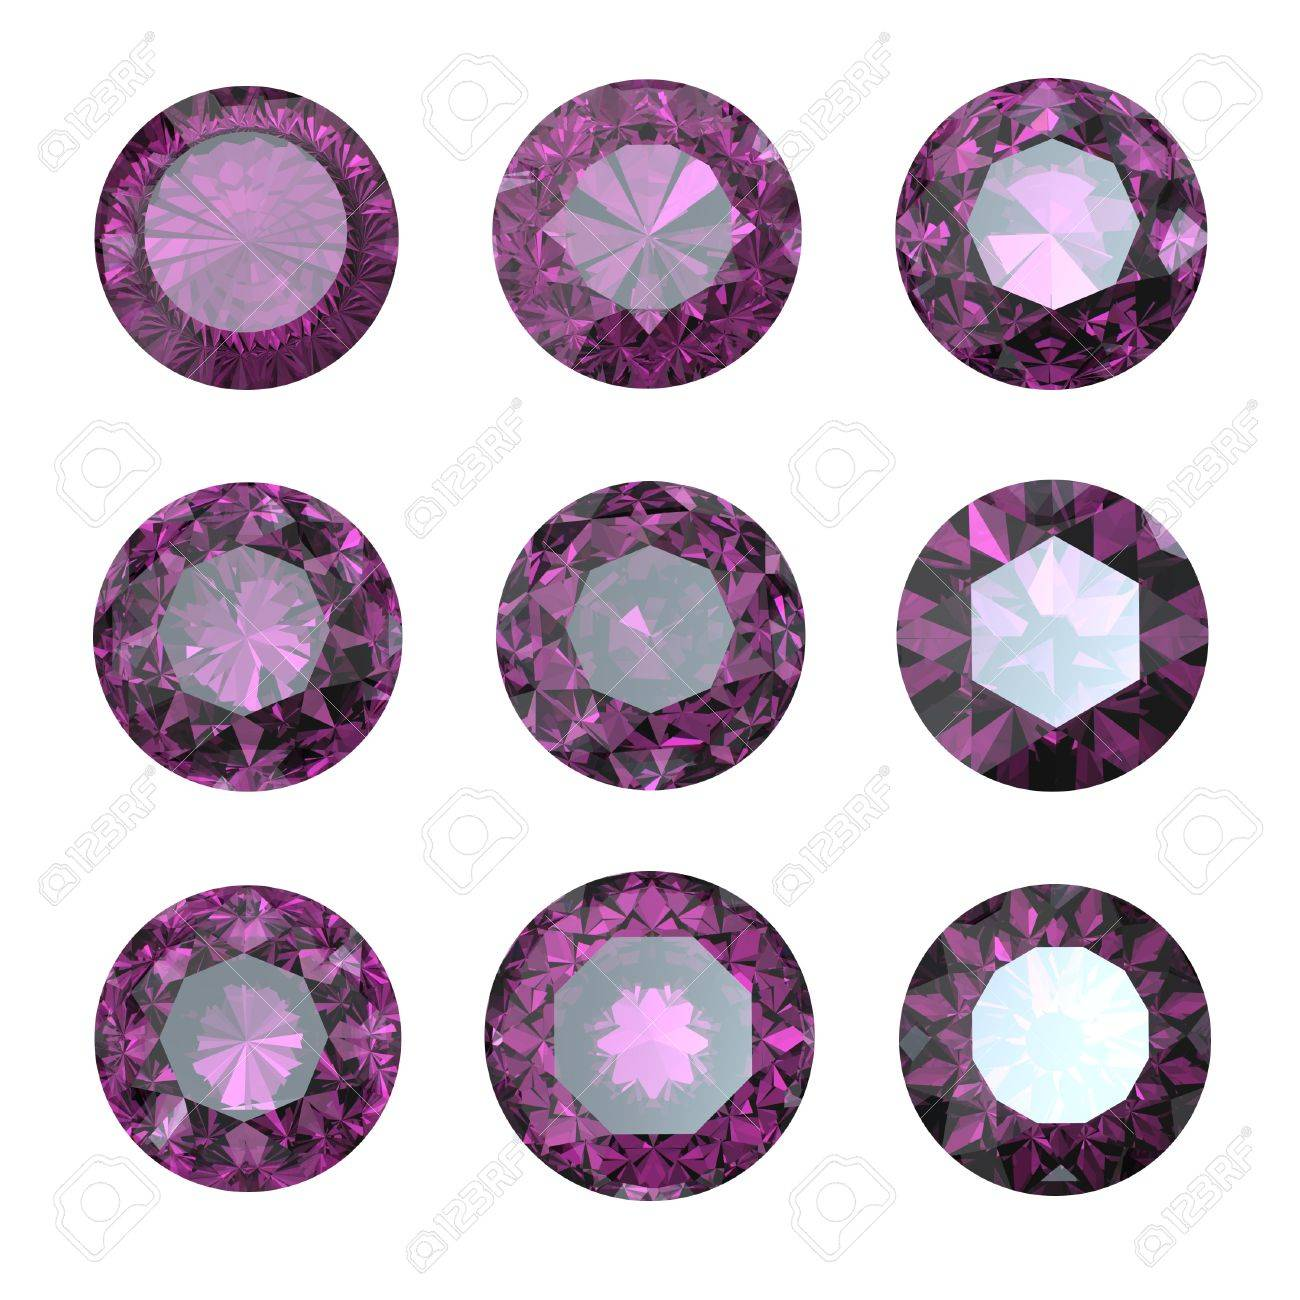 Set of round amethyst isolated. Gemstonecut diamond perspective on black background Stock Photo - 12009825